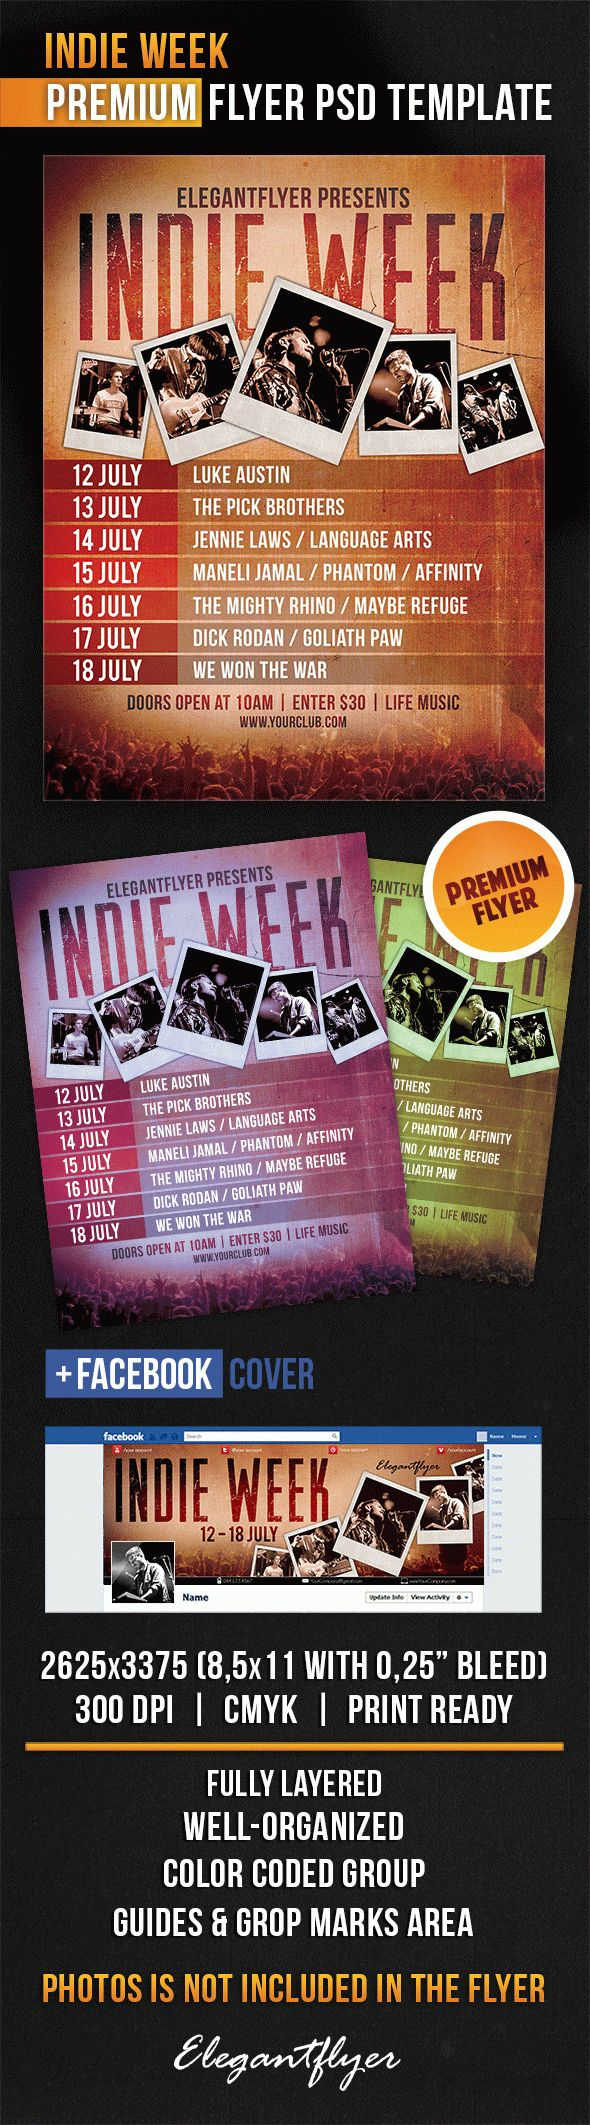 PSD Template For Indie Week